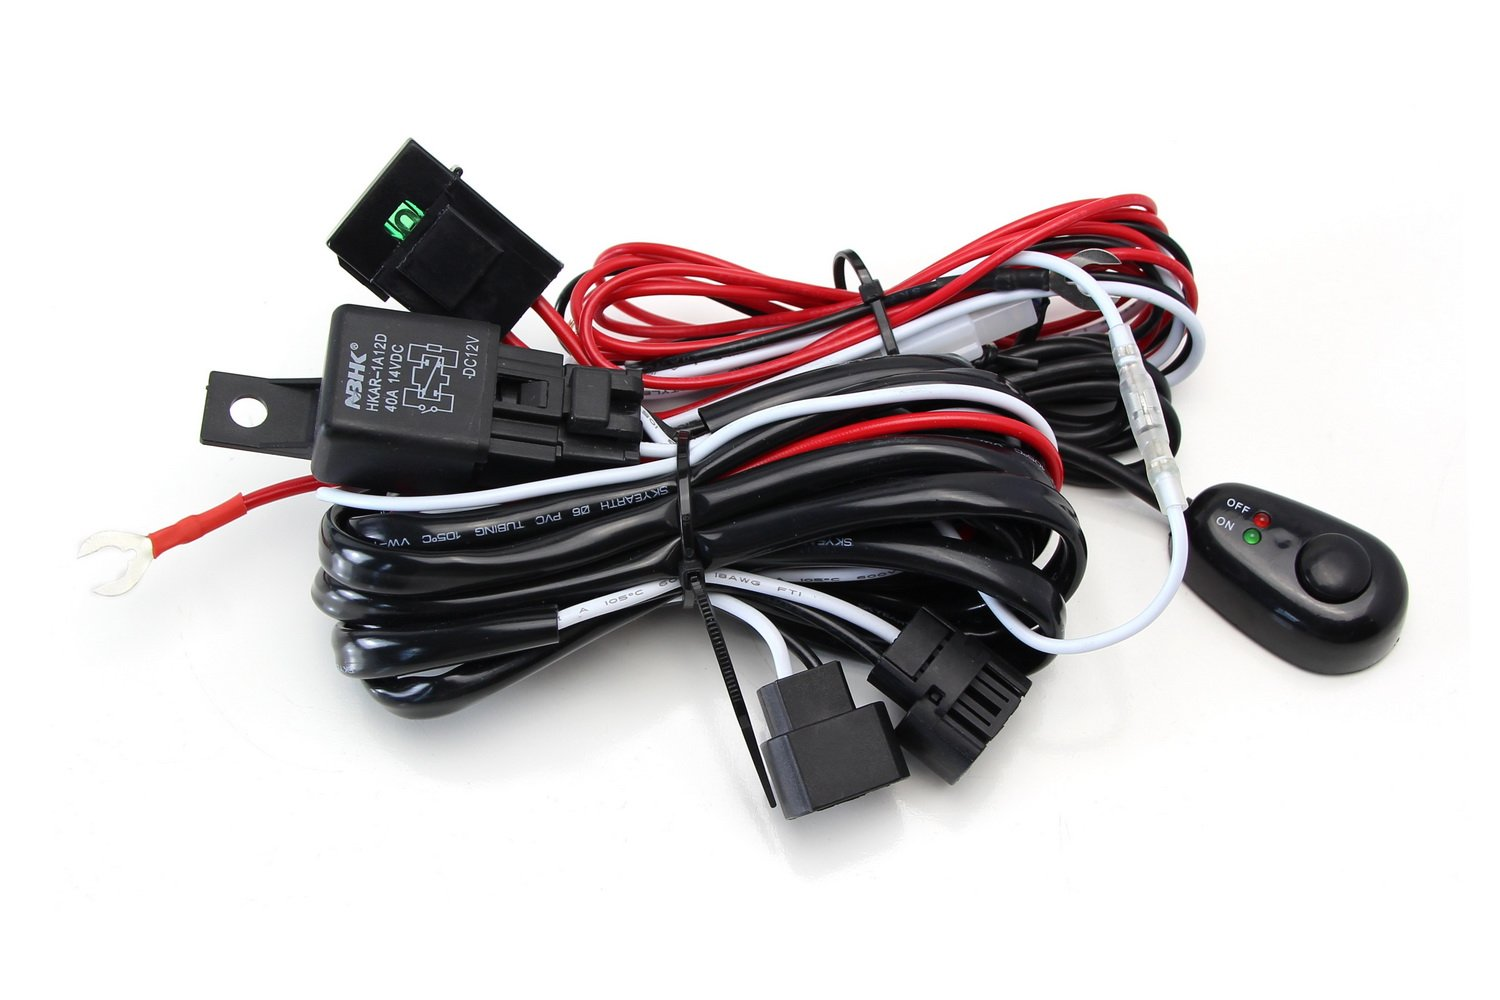 Ijdmtoy 1 5202 Psx24w 2504 Relay Harness Wire Kit With Chevrolet Colorado Fog Light Wiring Diagram Led On Off Switch For Aftermarket Lights Driving Hid Conversion